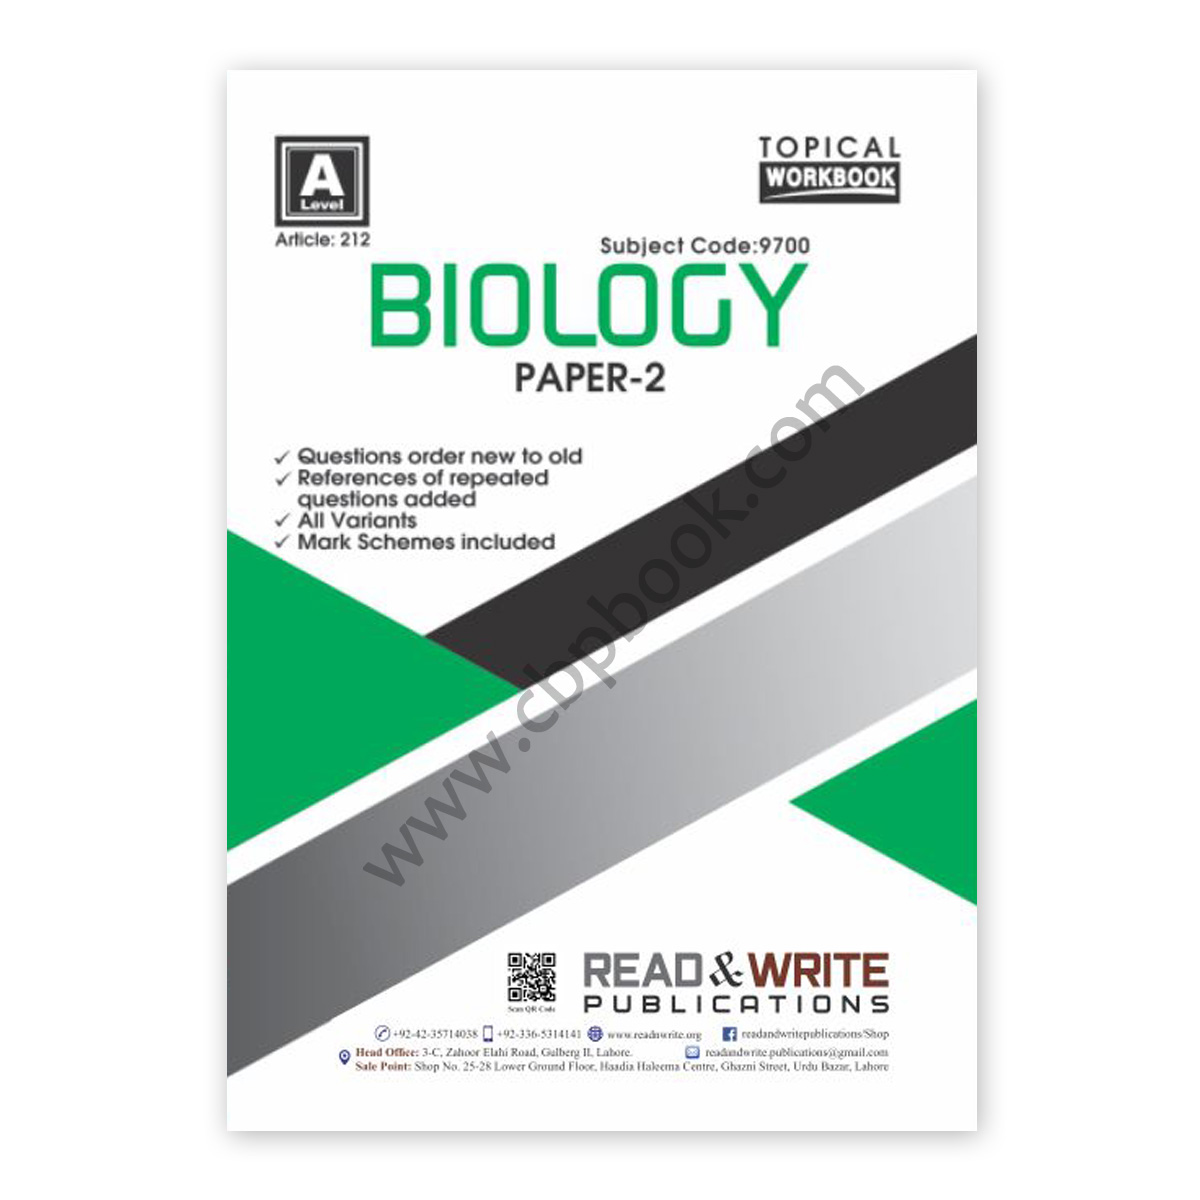 a level biology paper 2 topical workbook (art#212) - read & write